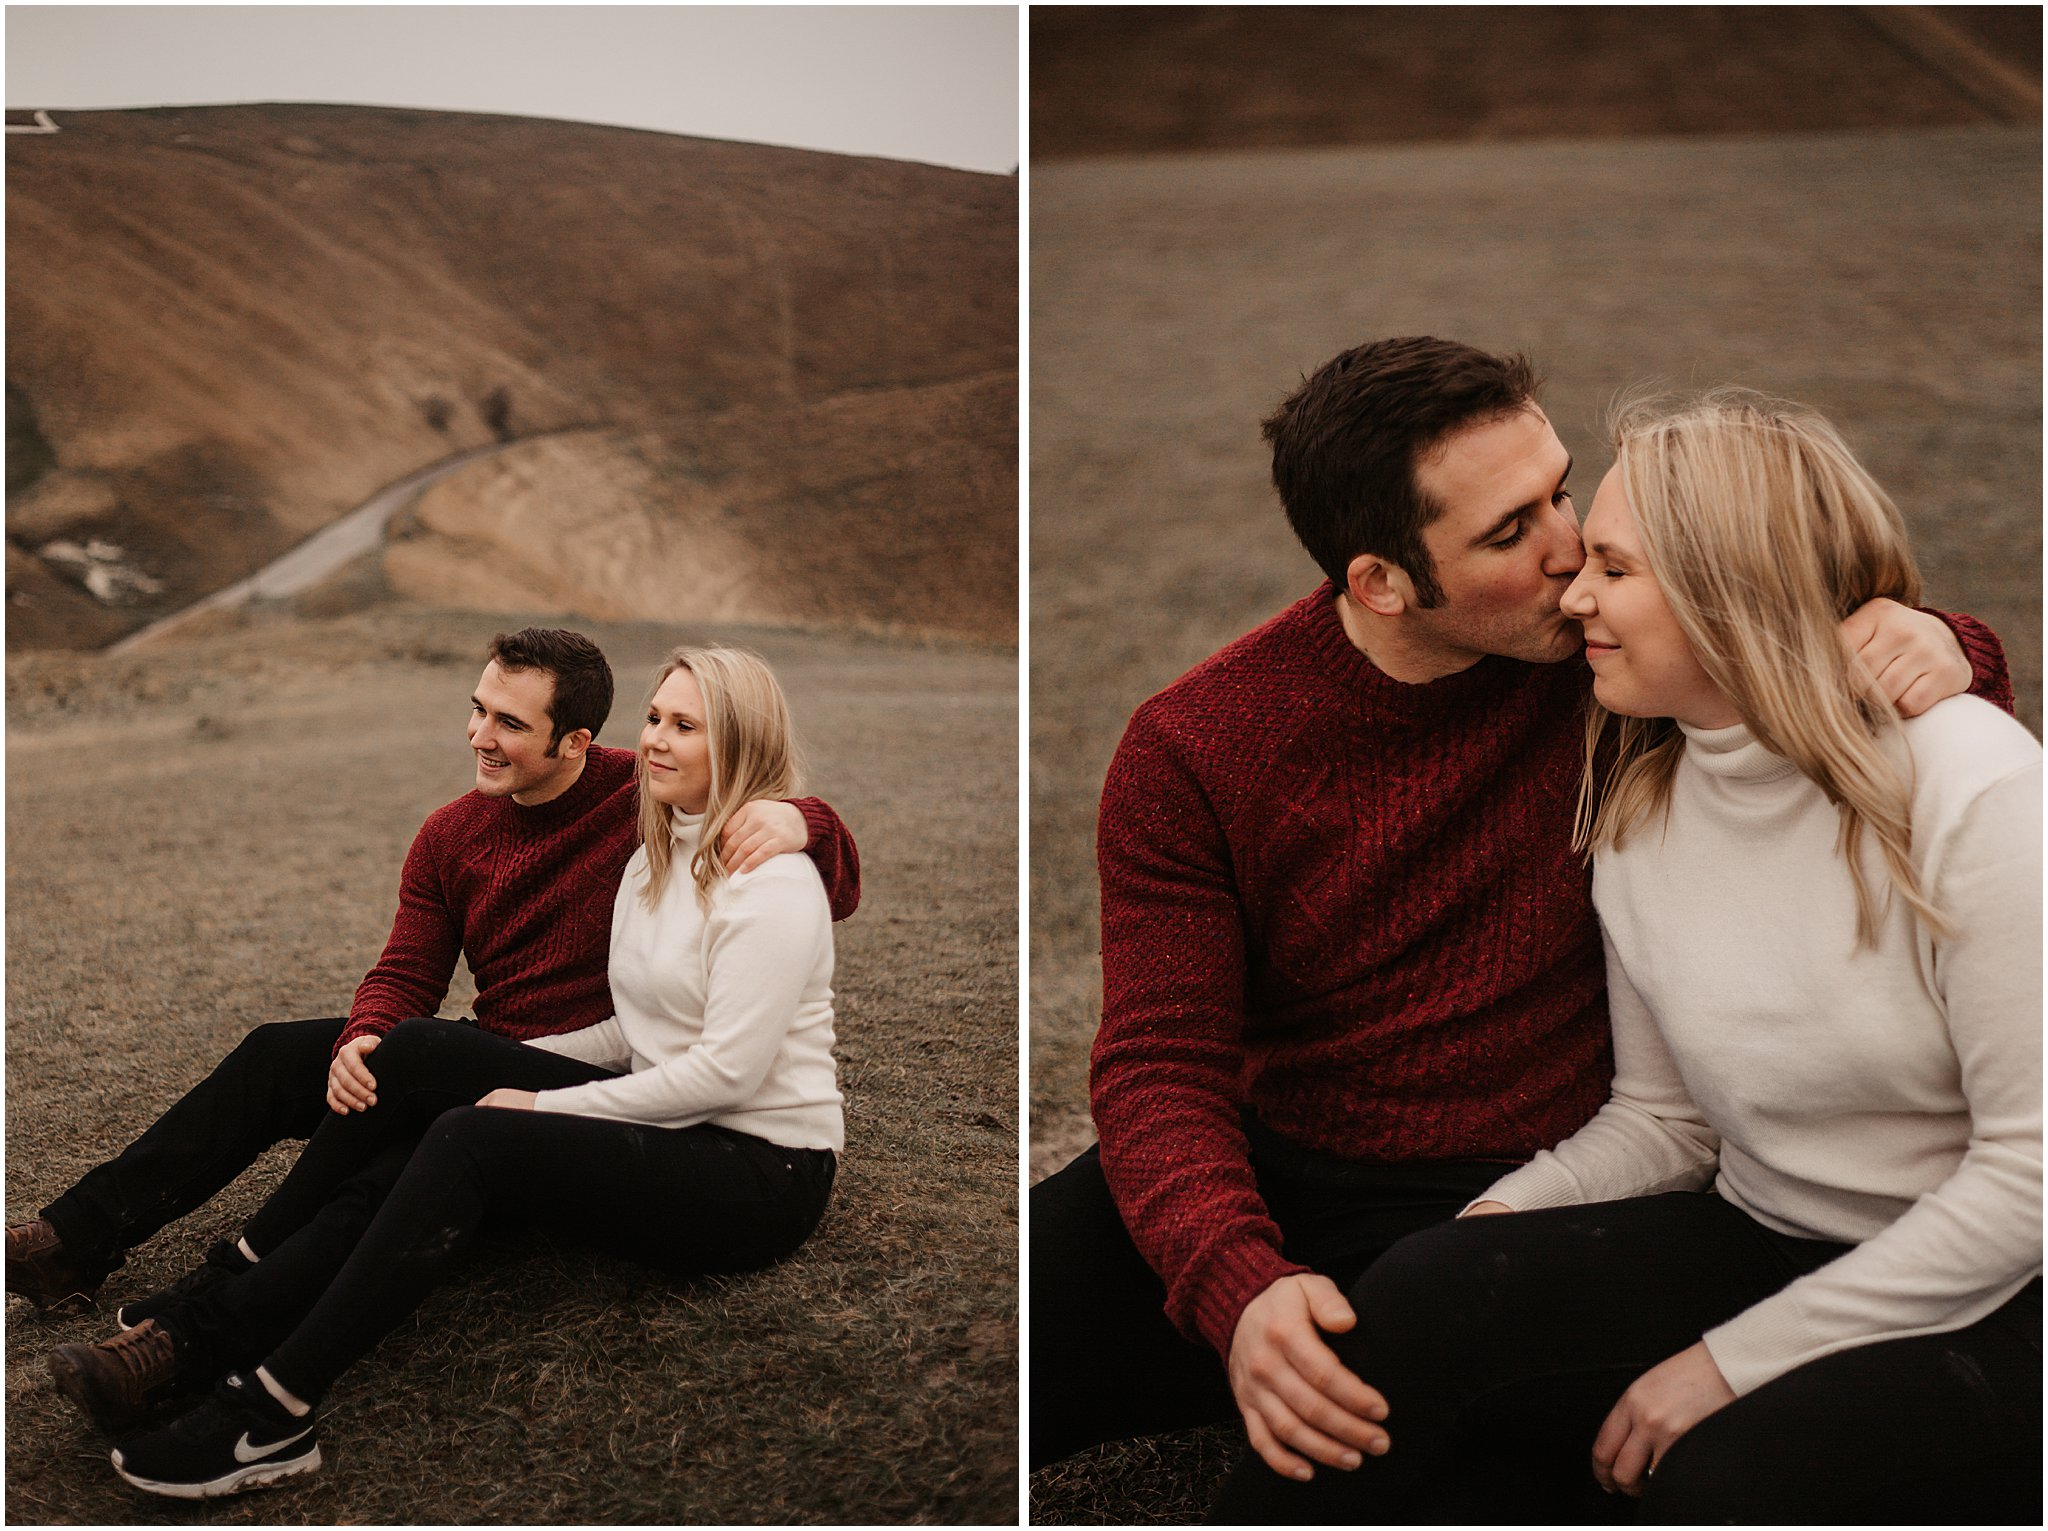 Mike & Charley_s Winter Engagement Shoot Wiltshire-105.jpg